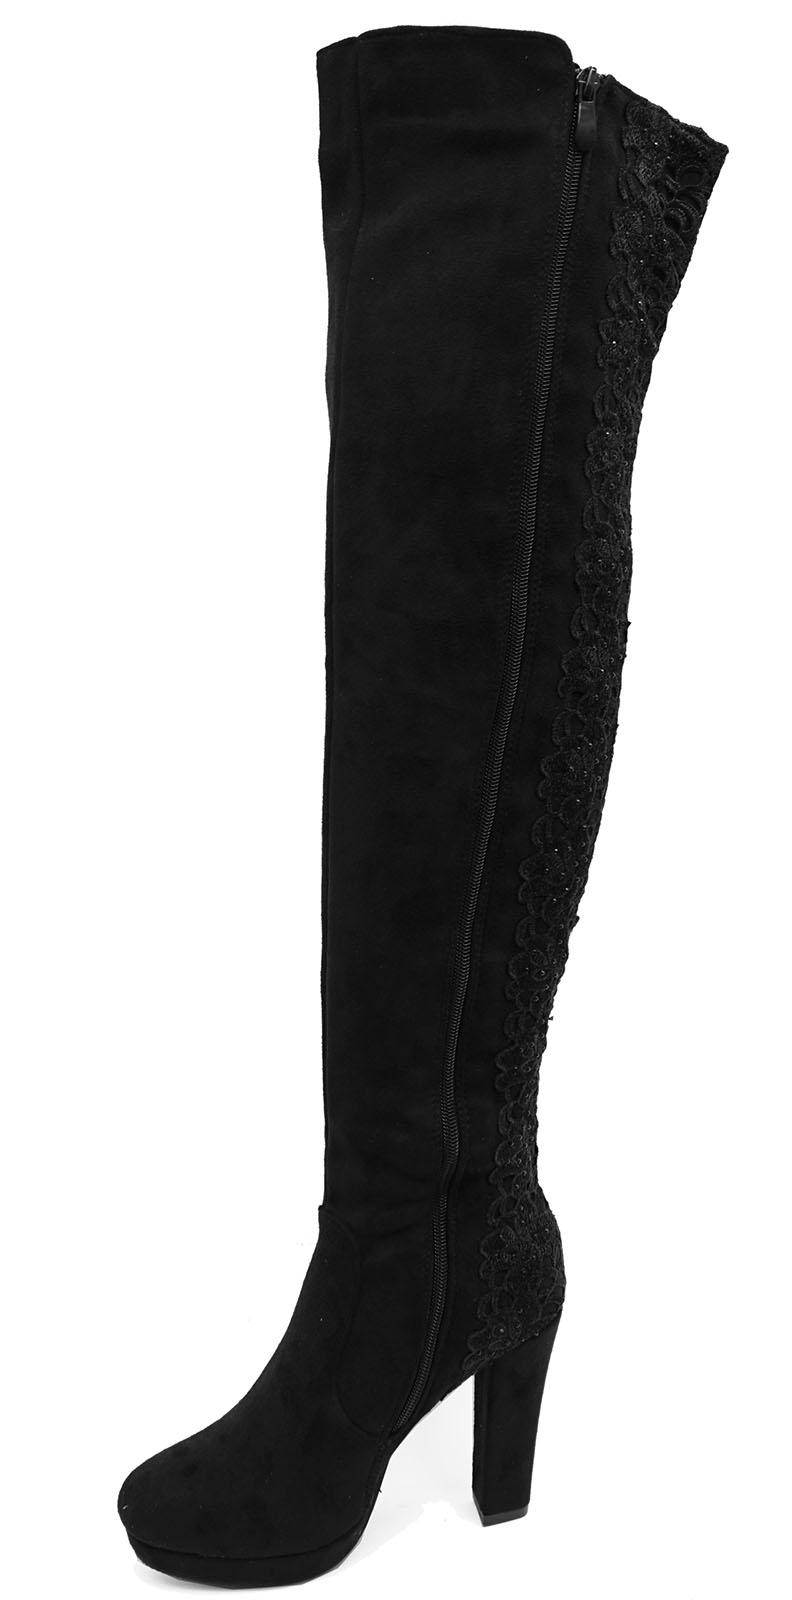 LADIES-BLACK-LACE-OVER-THE-KNEE-HIGH-ZIP-UP-STRETCH-PLATFORM-BOOTS-SHOES-UK-3-8 thumbnail 7